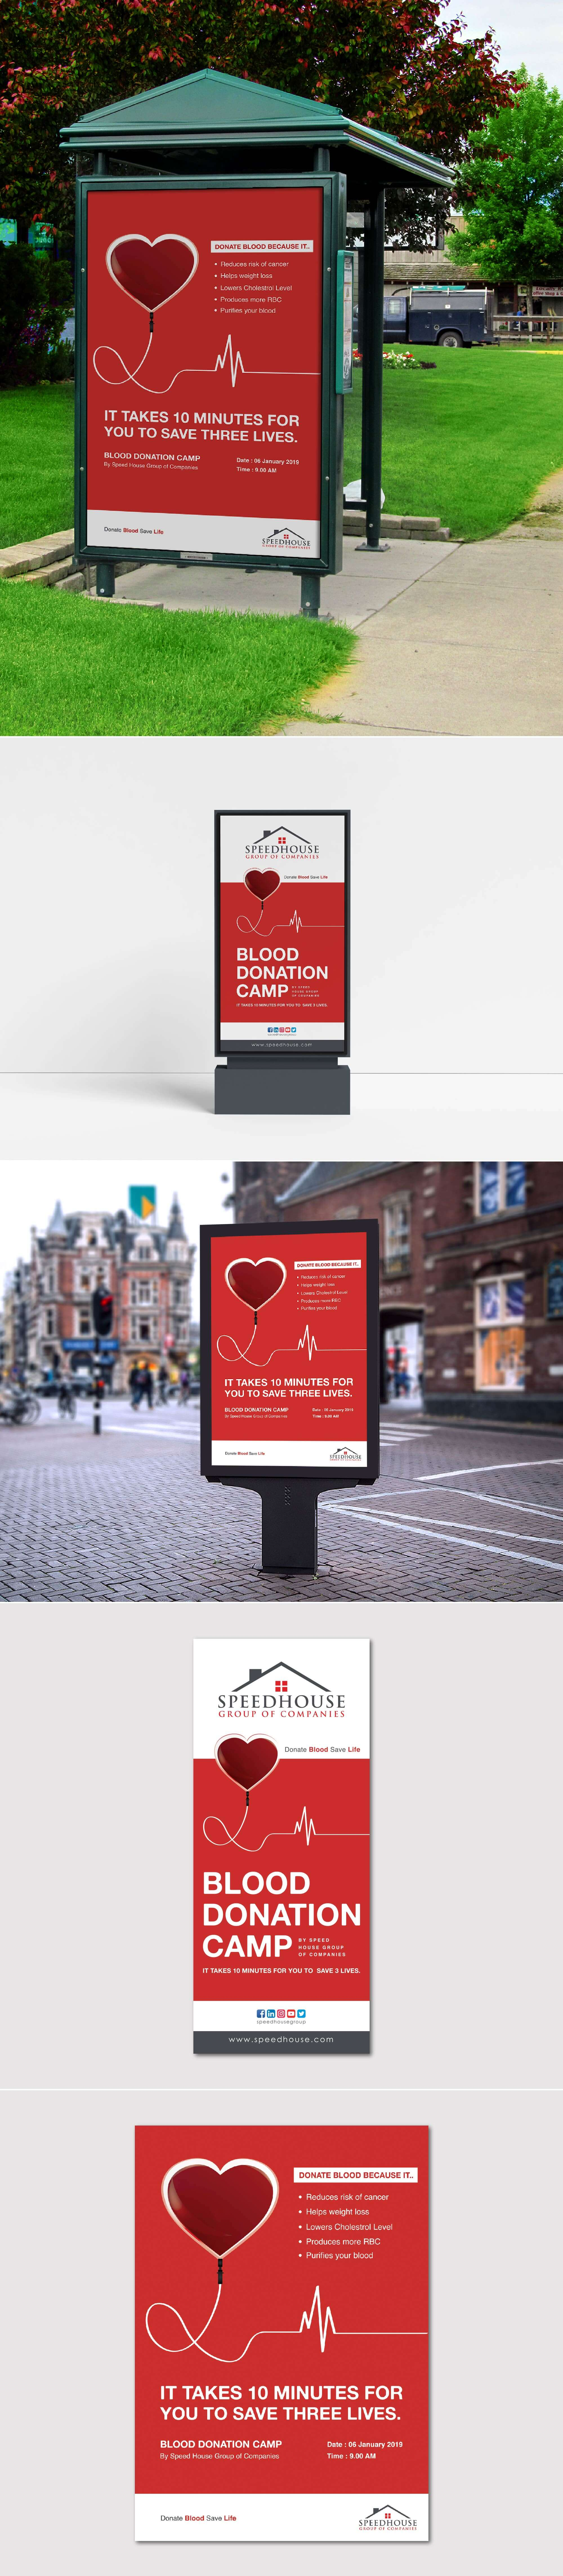 Blood Donation Camp ad by Sajid Sulaiman